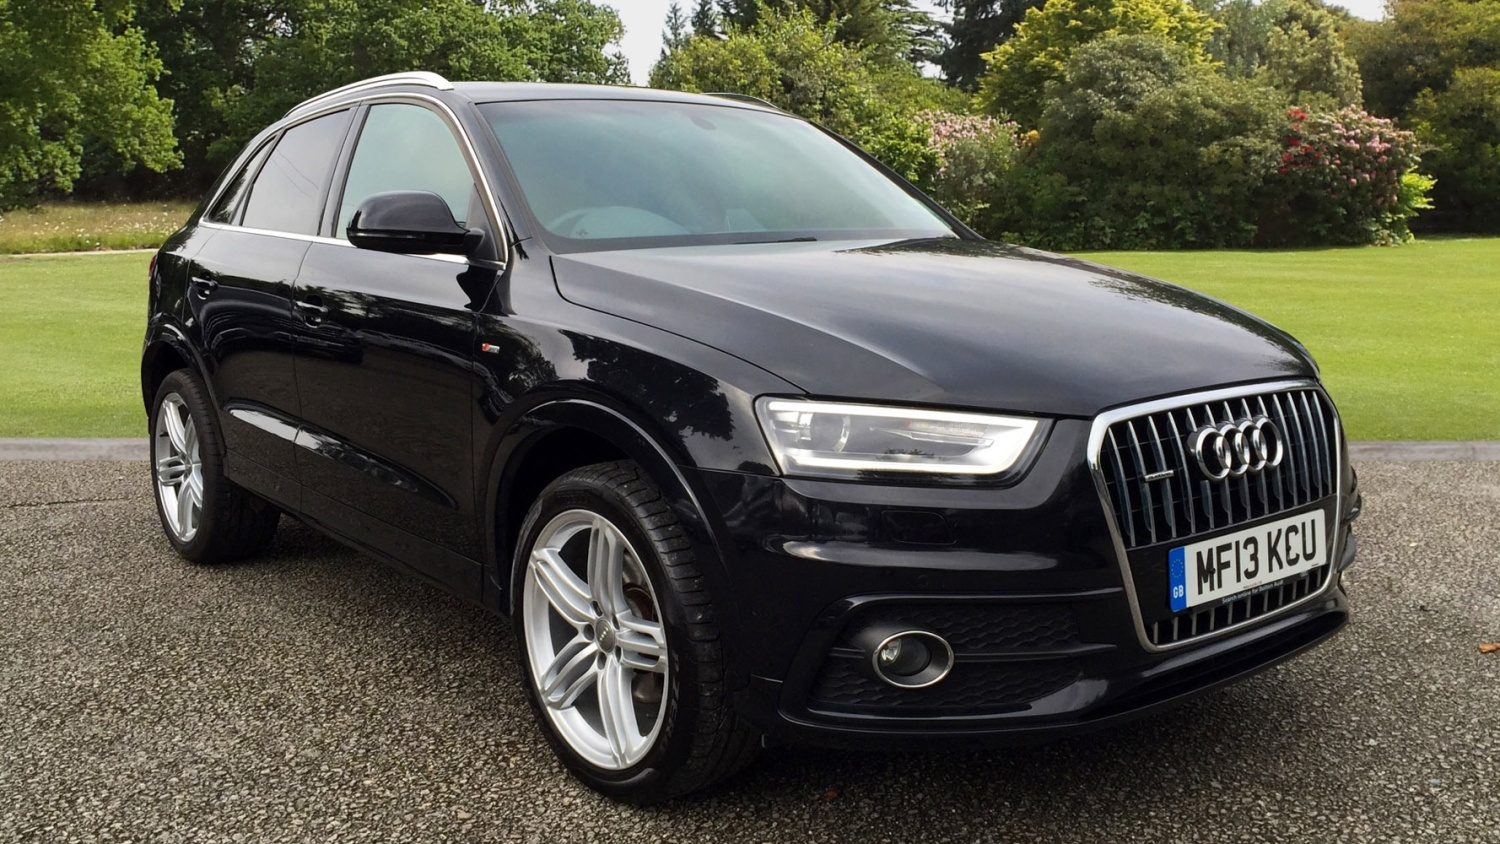 used audi q3 2 0 tdi 177 quattro s line 5dr s tronic diesel estate for sale farnell jaguar. Black Bedroom Furniture Sets. Home Design Ideas